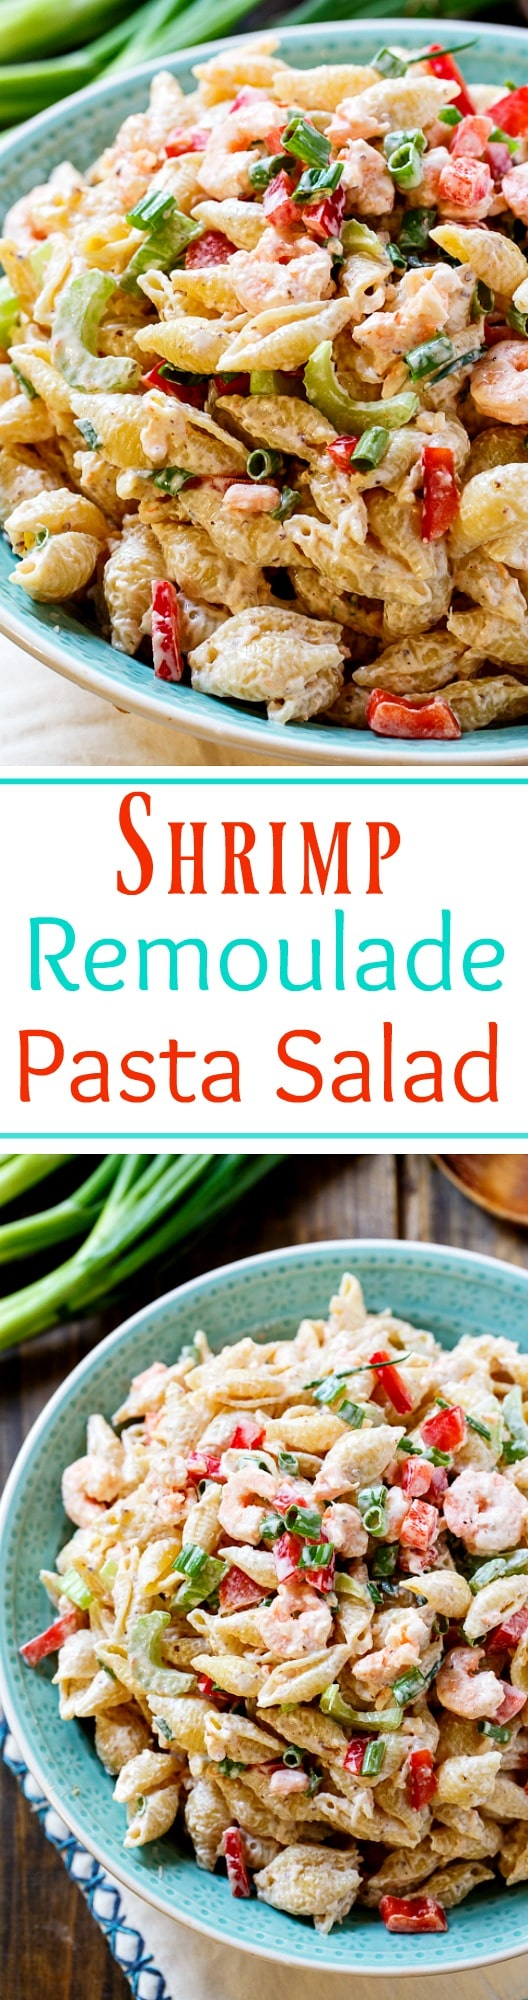 Shrimp Remoulade Pasta Salad- perfect for Mardi Gras!